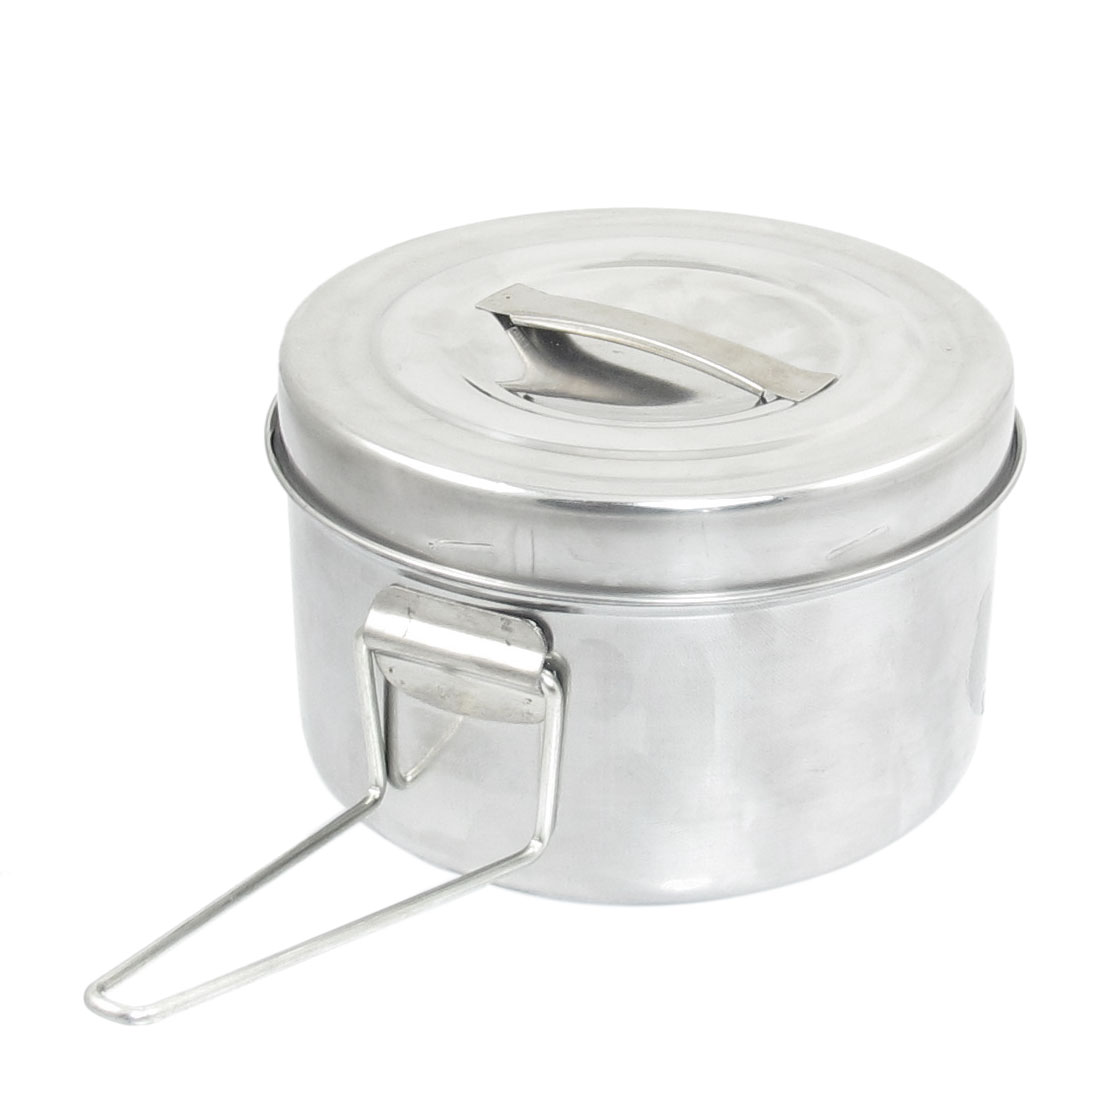 Kitchen Separable Handle Stainless Steel Round Shaped Lunch Box